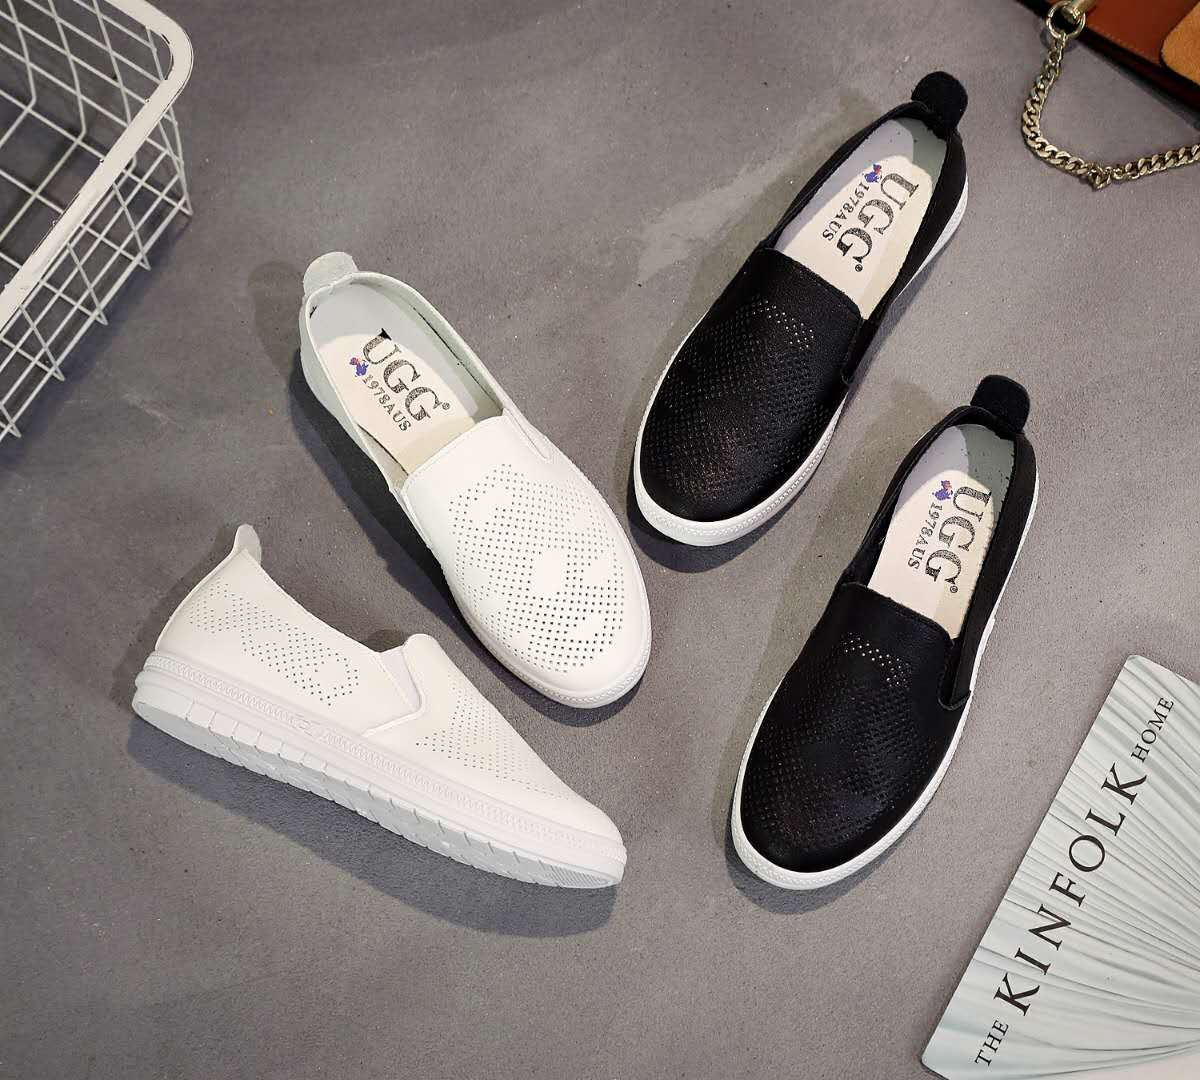 Sole New Casual for Shoes 2018 Design Women Comfortable Girls Rubber qaIfZwI